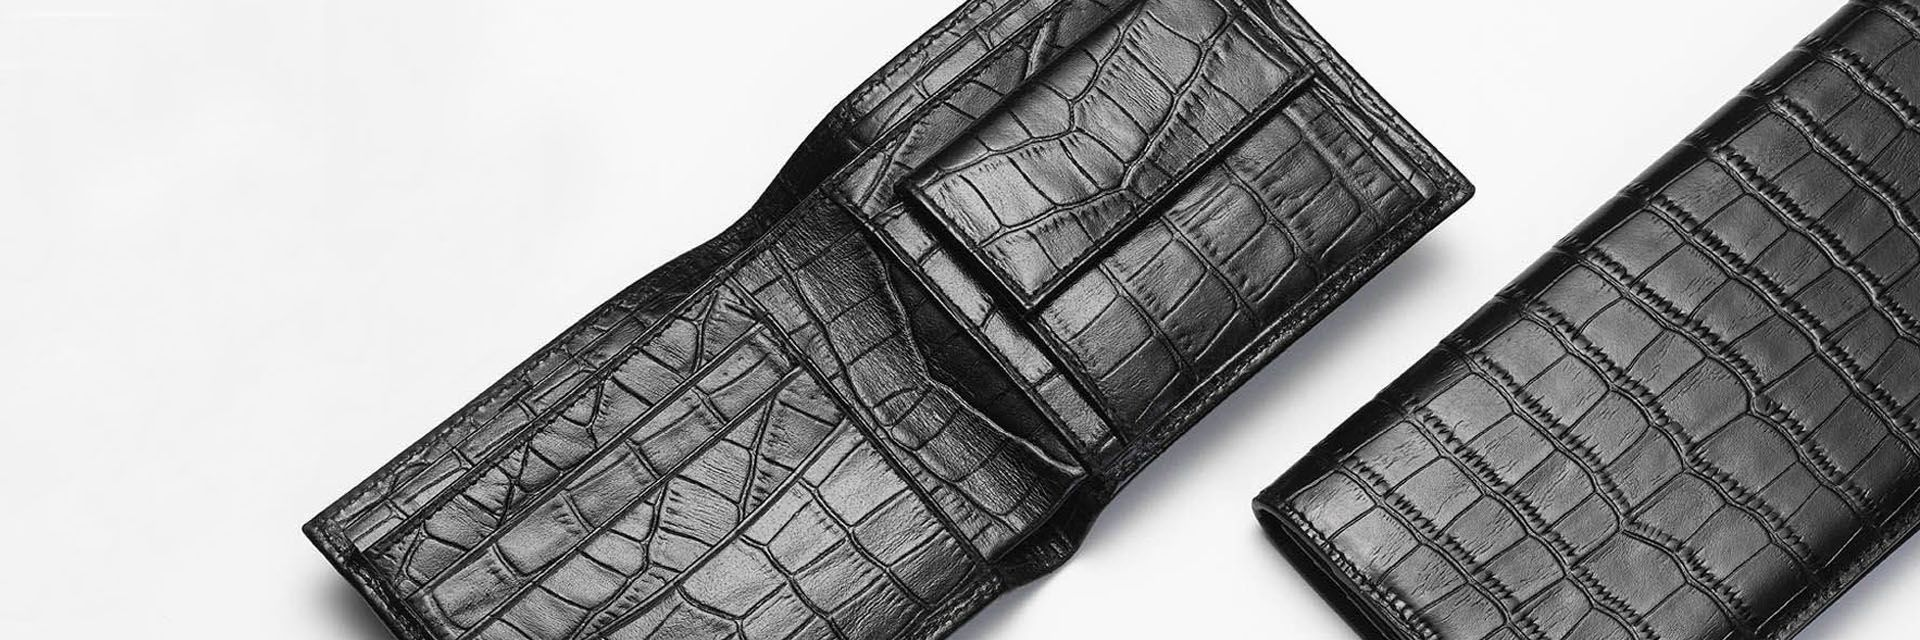 Alligator leather wallets